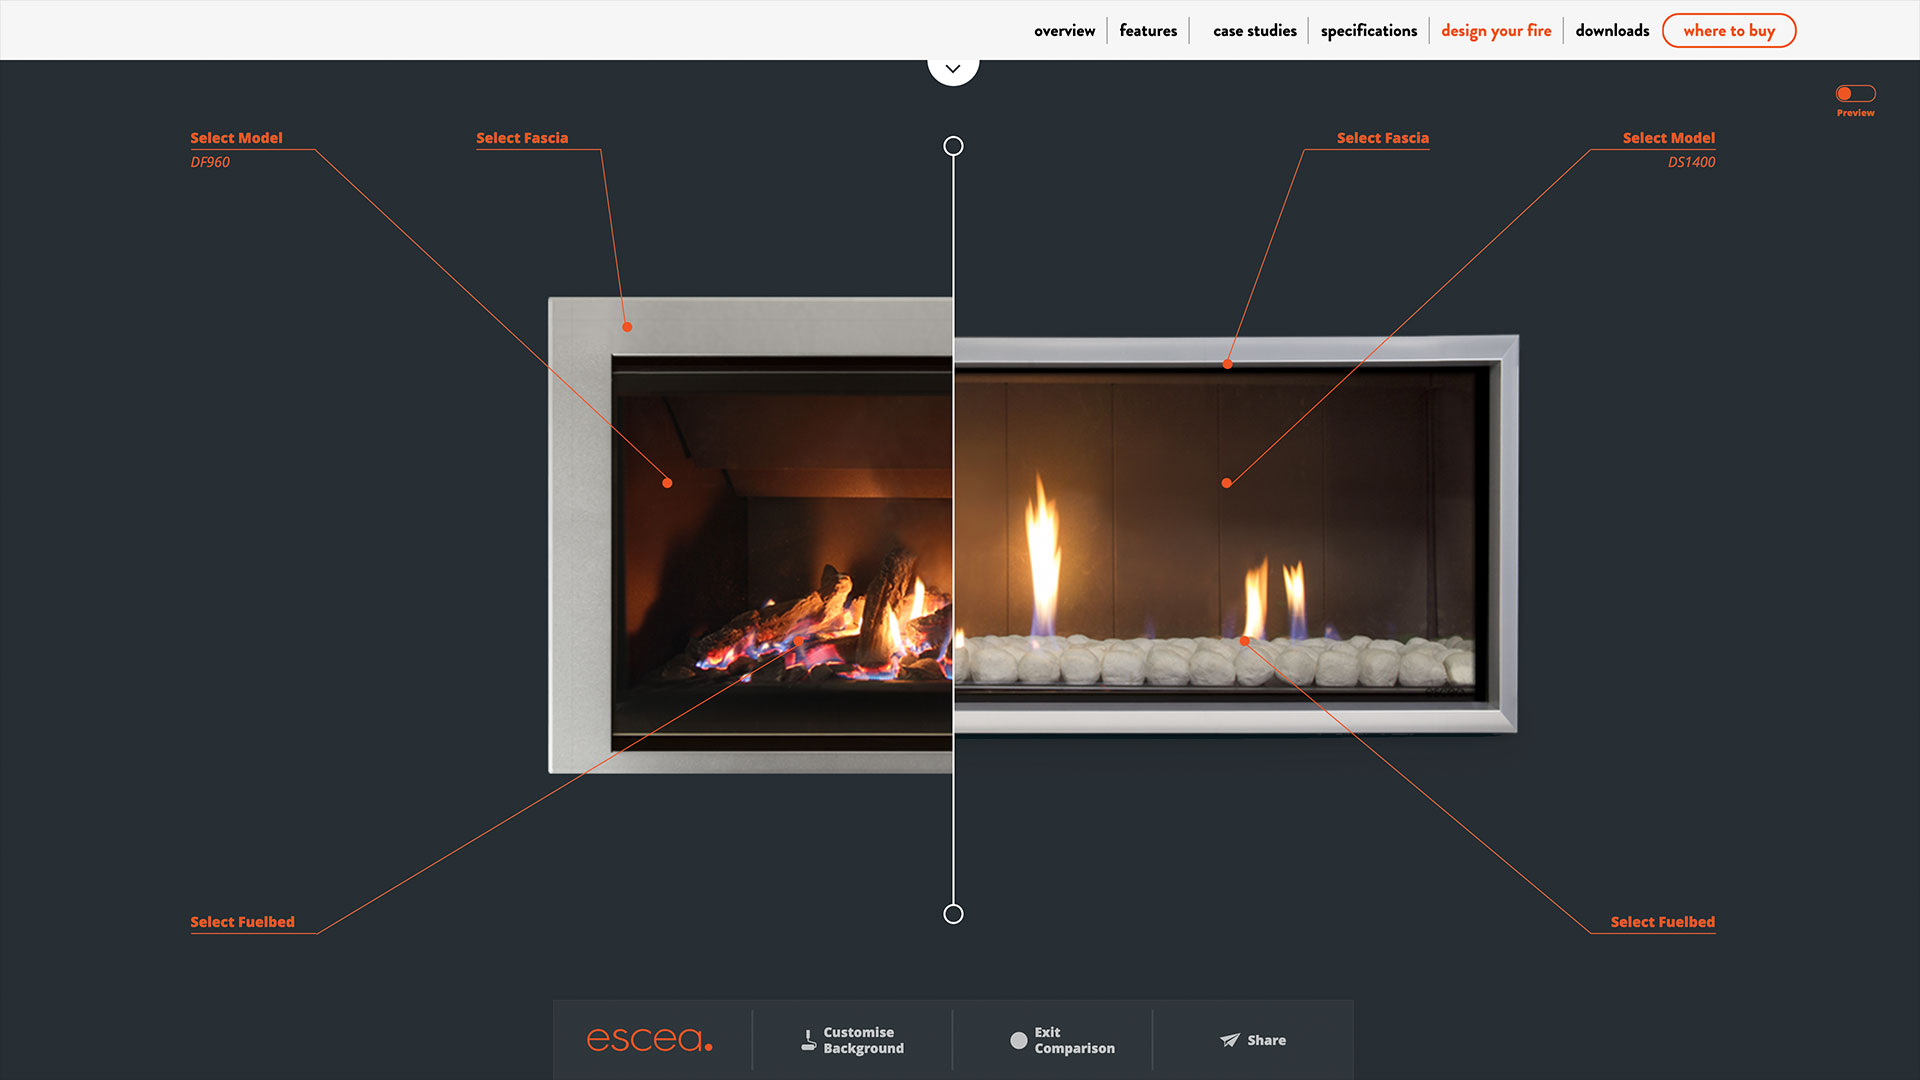 Escea website Design Your Fire web app